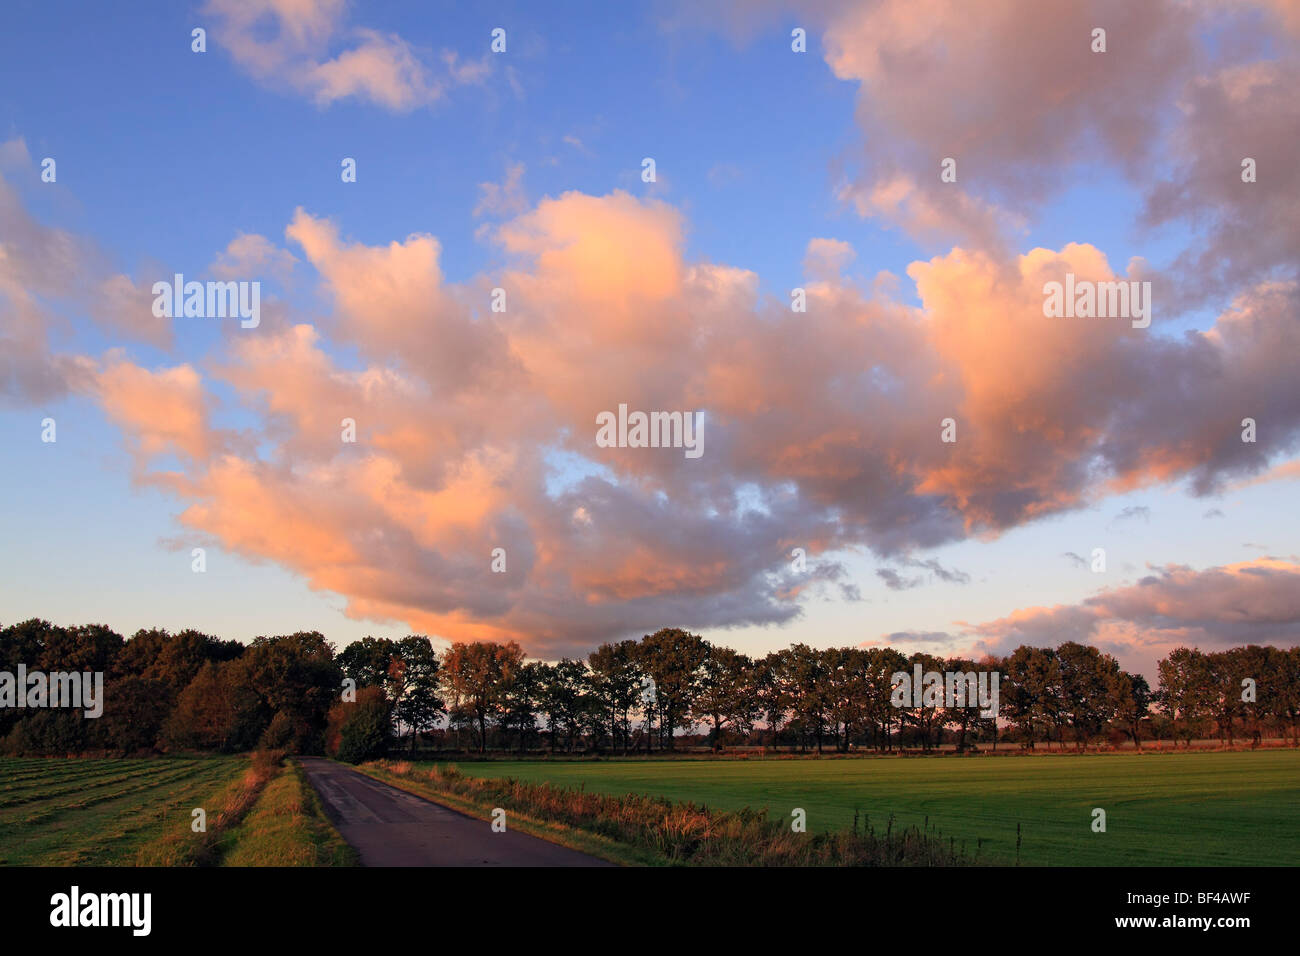 Dramatic sky with clouds illuminated in red light from the late evening sun at sunset, landscape in Oberalsterniederung - Stock Image